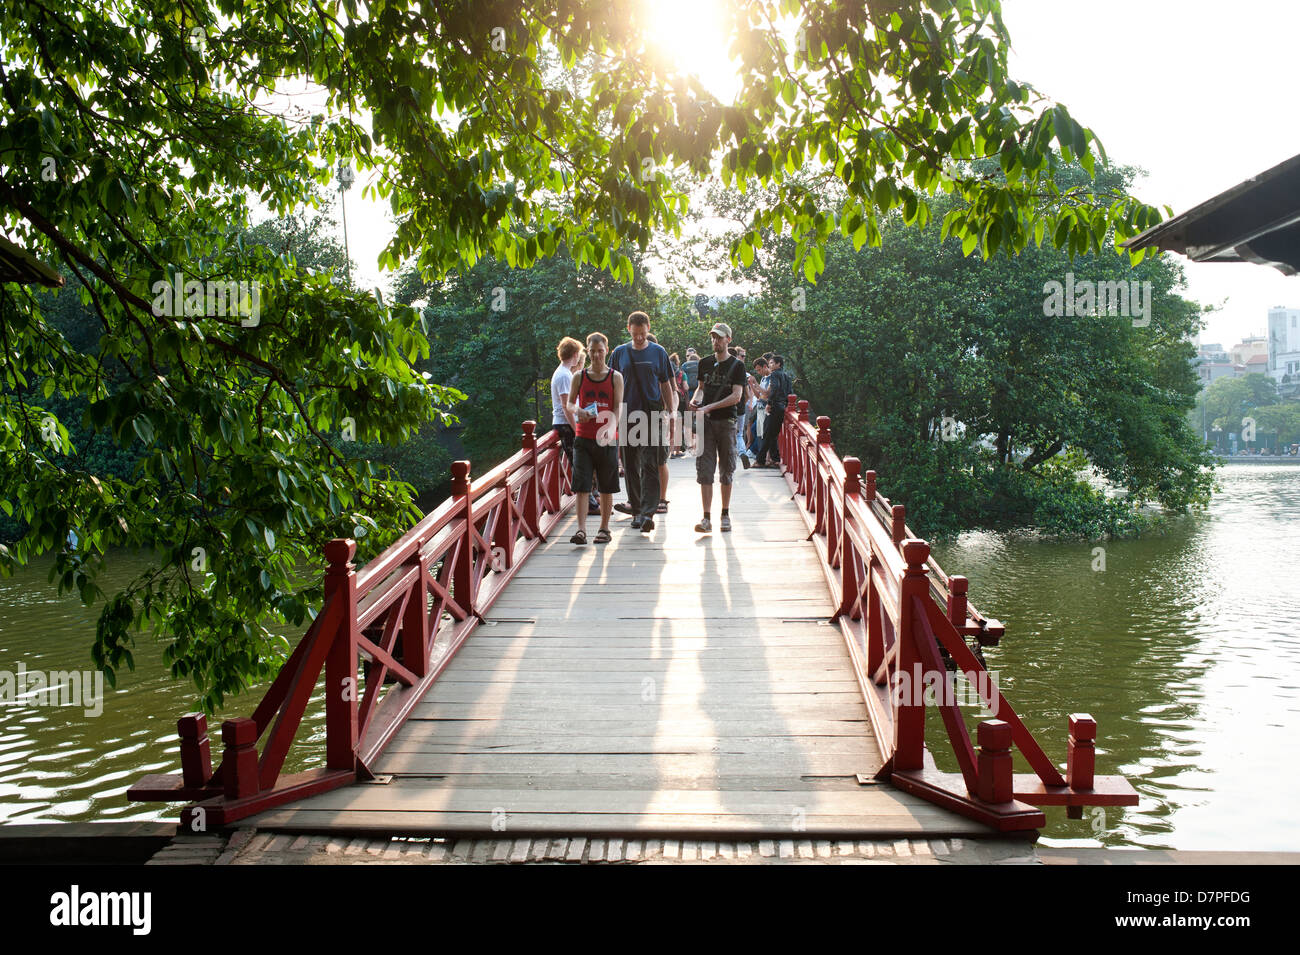 Hanoi, vietnam - Huc Bridge, Hoan Kiem Lake - Stock Image